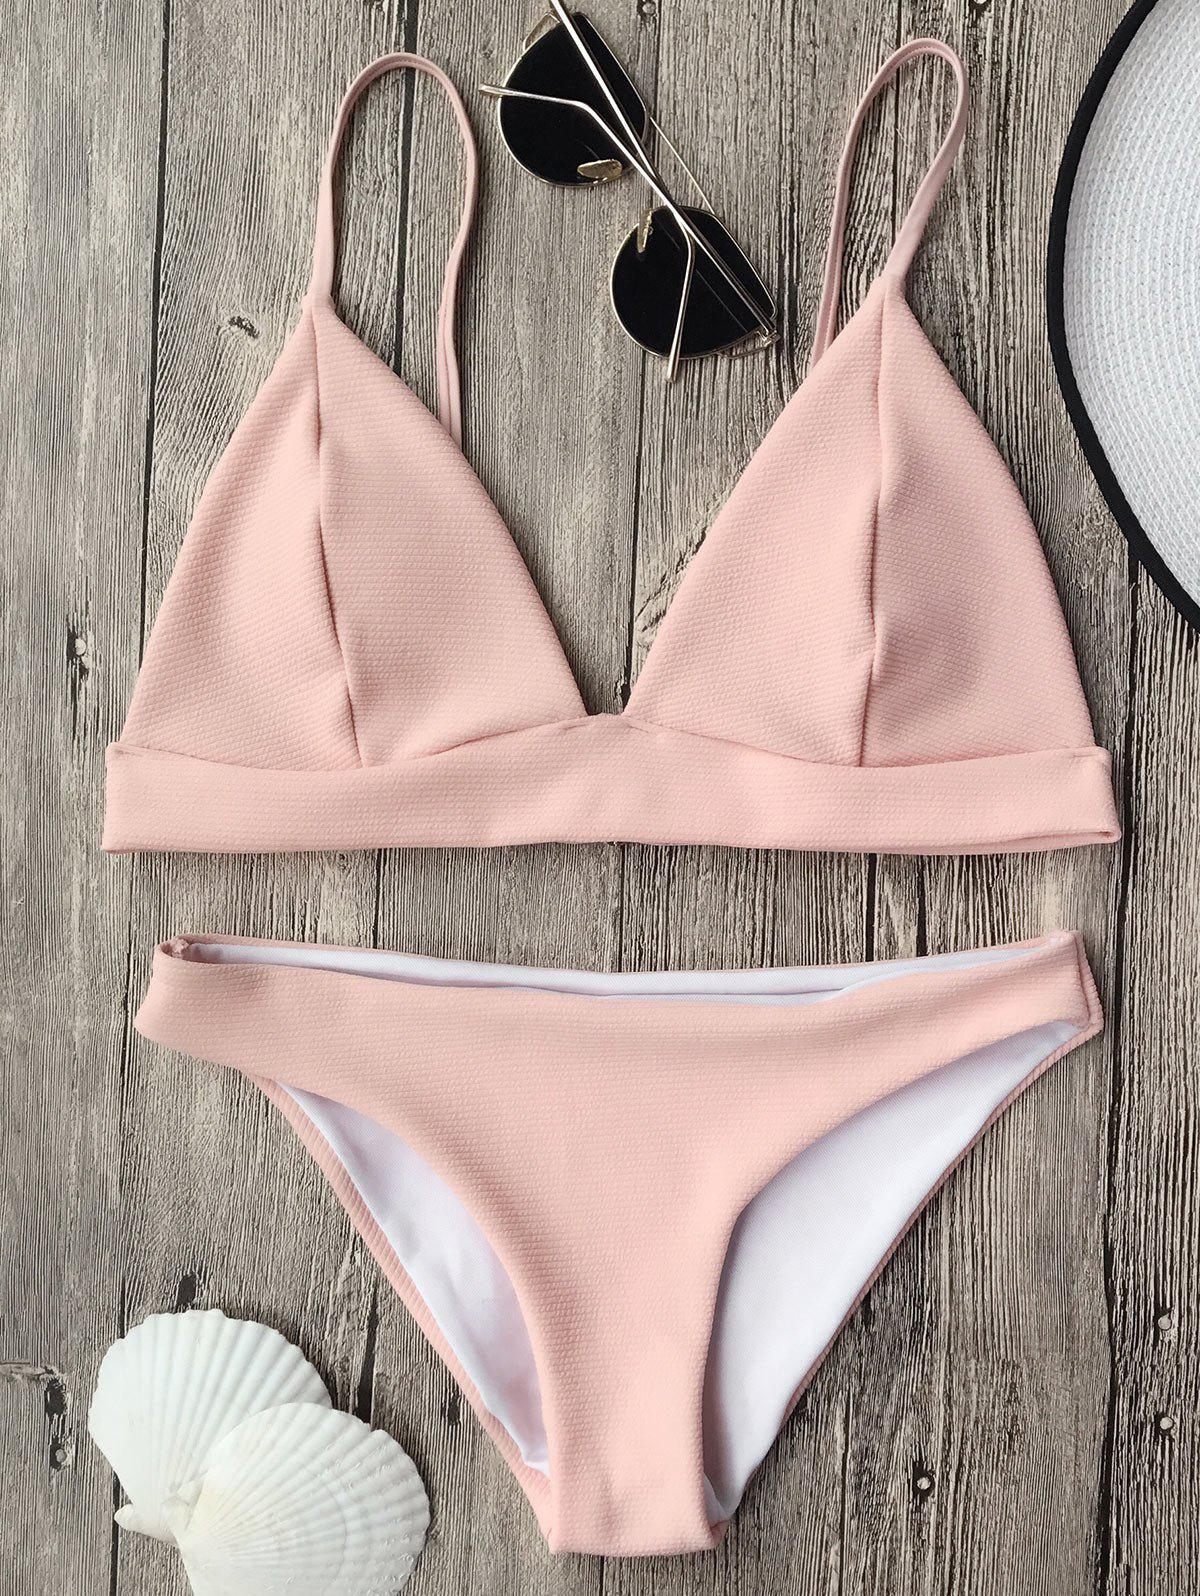 Cami Plunge Bikini Top and BottomsWOMEN<br><br>Size: S; Color: PINK; Swimwear Type: Bikini; Gender: For Women; Material: Polyester,Spandex; Bra Style: Padded; Support Type: Wire Free; Neckline: Spaghetti Straps; Pattern Type: Solid; Waist: Low Waisted; Elasticity: Elastic; Weight: 0.2000kg; Package Contents: 1 x Top  1 x Bottoms;